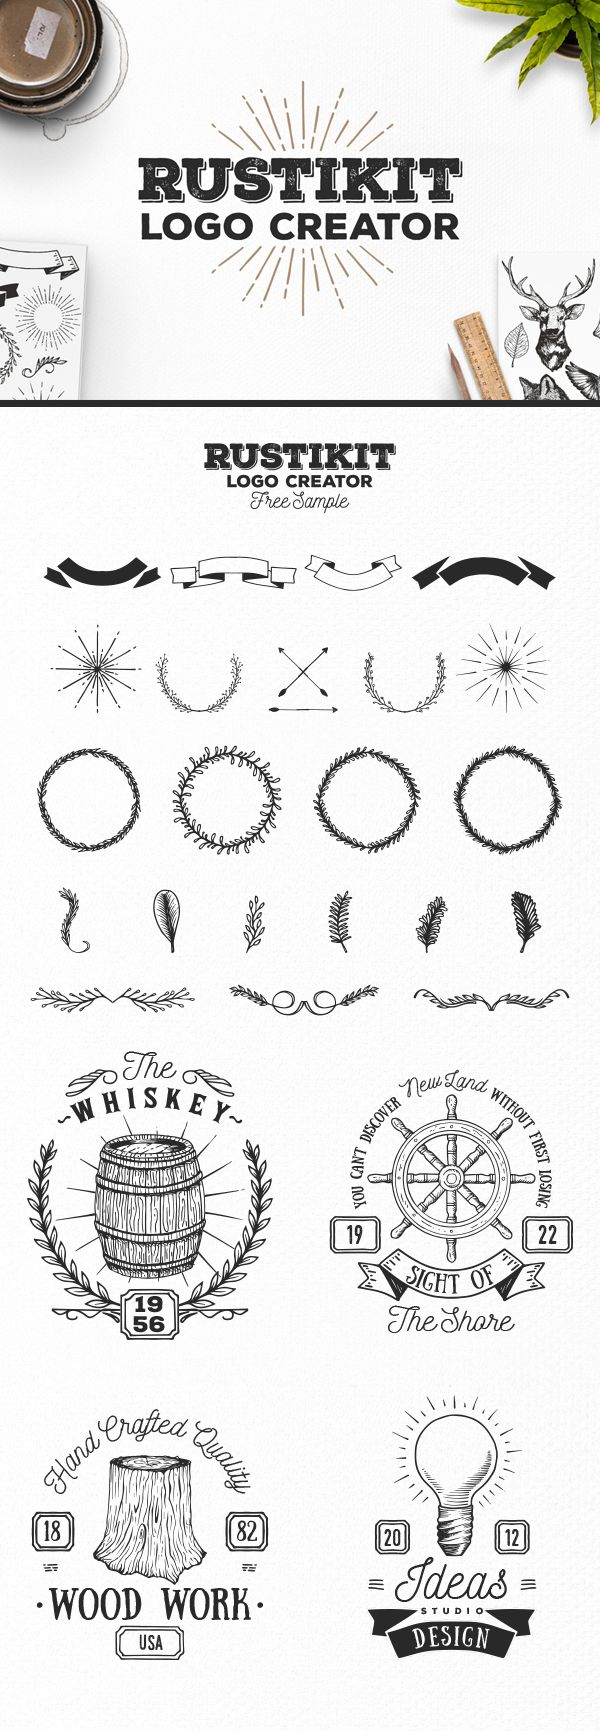 Today we have for you an original, hand crafted logo creator kit inspired by nature that will help you create great logos...